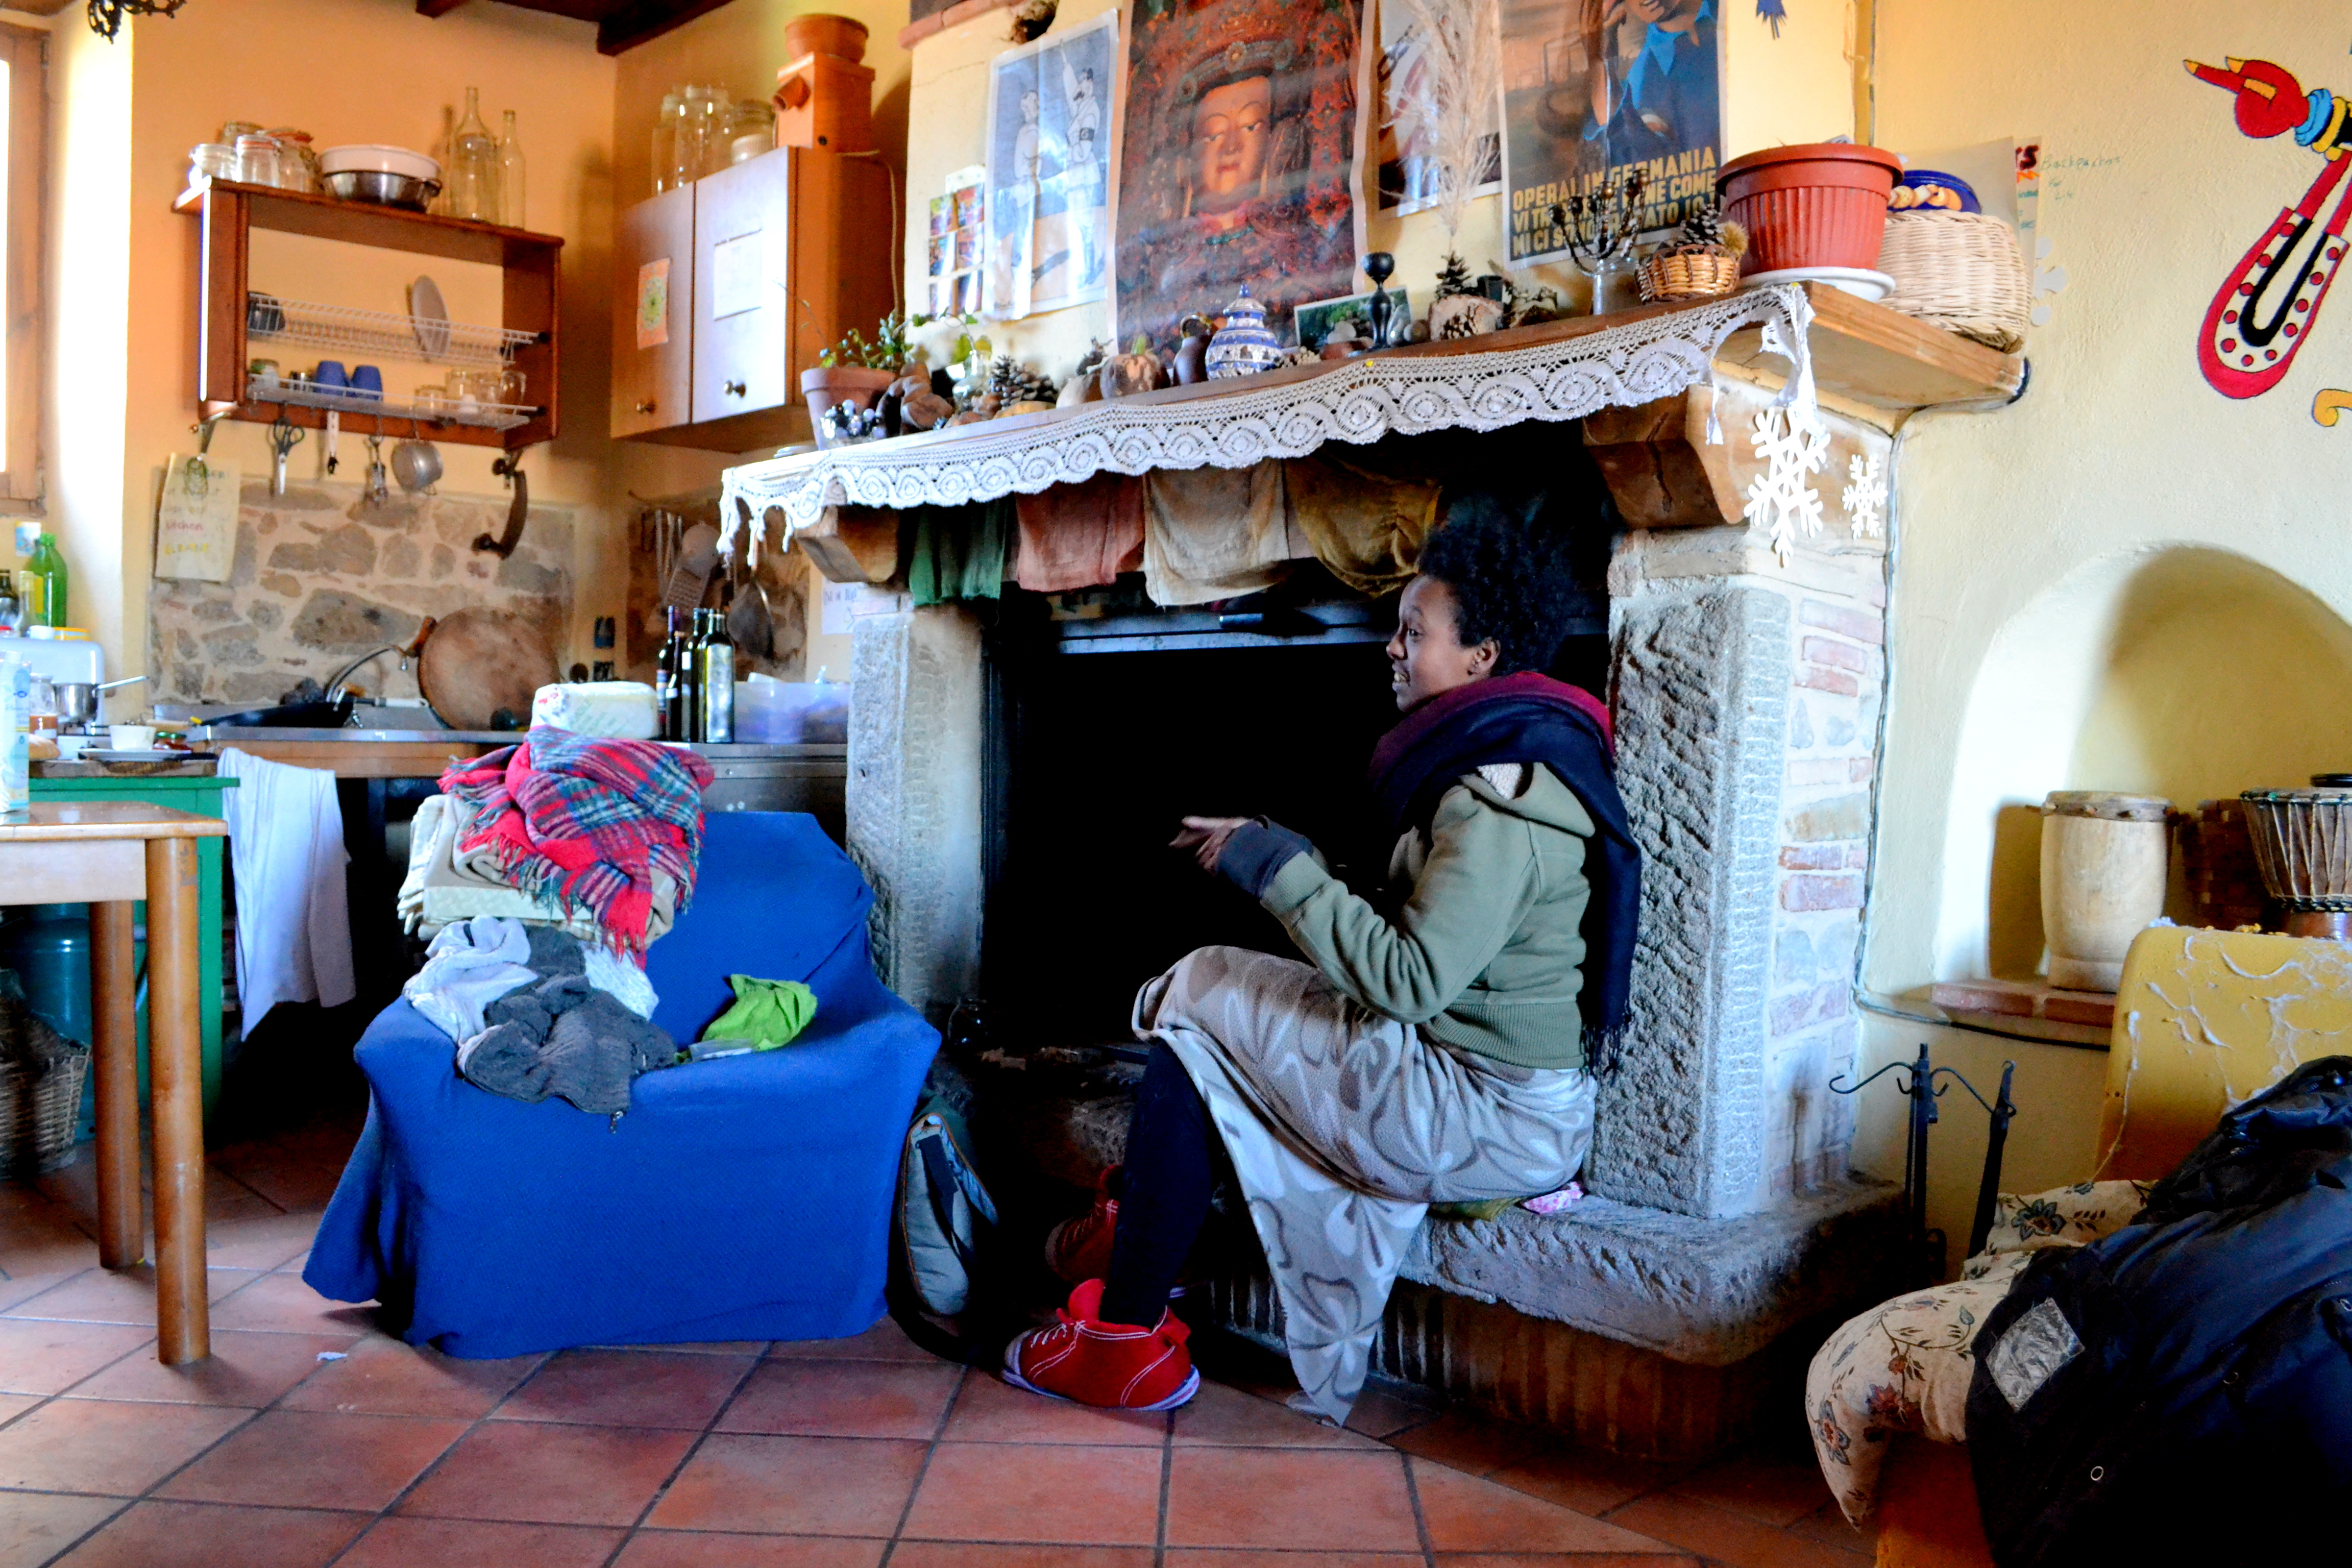 Life in the commune at Arcidosso, Italy